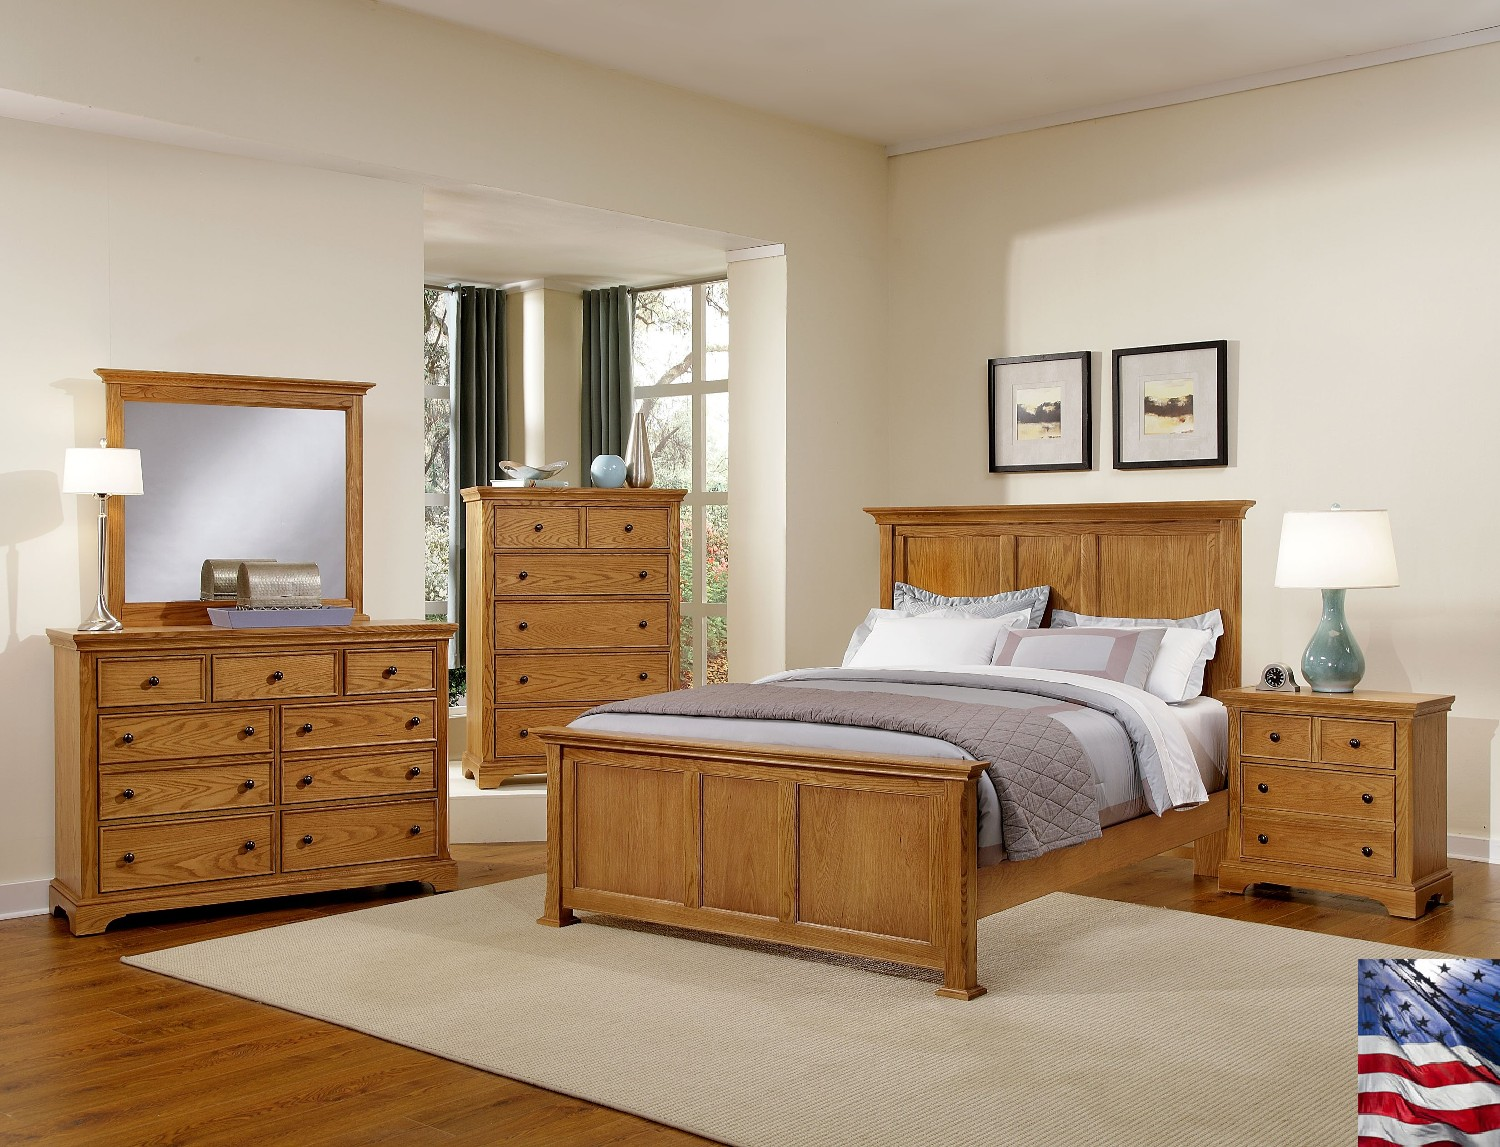 bedroom ideas with brown furniture photo - 8